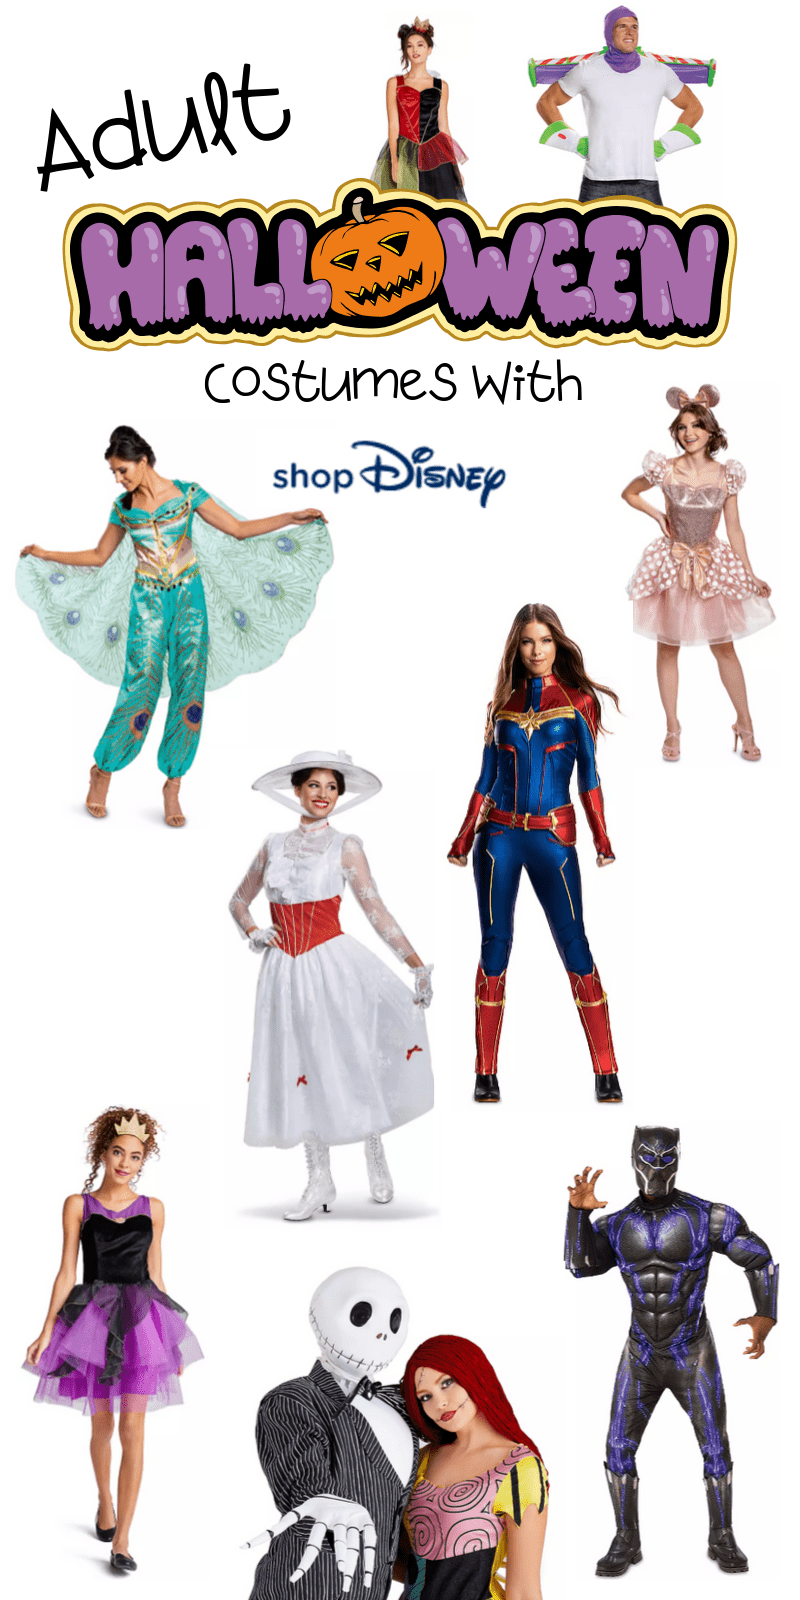 Here are the best in Disney Halloween Costumes for Adults. This fantastic post rounds up the spooky and adorableness of ShopDisney's Halloween Collection for 2019.  #ad @ShopDisney #halloween2019 #disney #disneylove #disneymagic #waltdisney #disneyprincess #mickeymouse #disneyphoto #disneylife #disneyfan #mickey #disneyaddict #disnerd #starwars #halloween